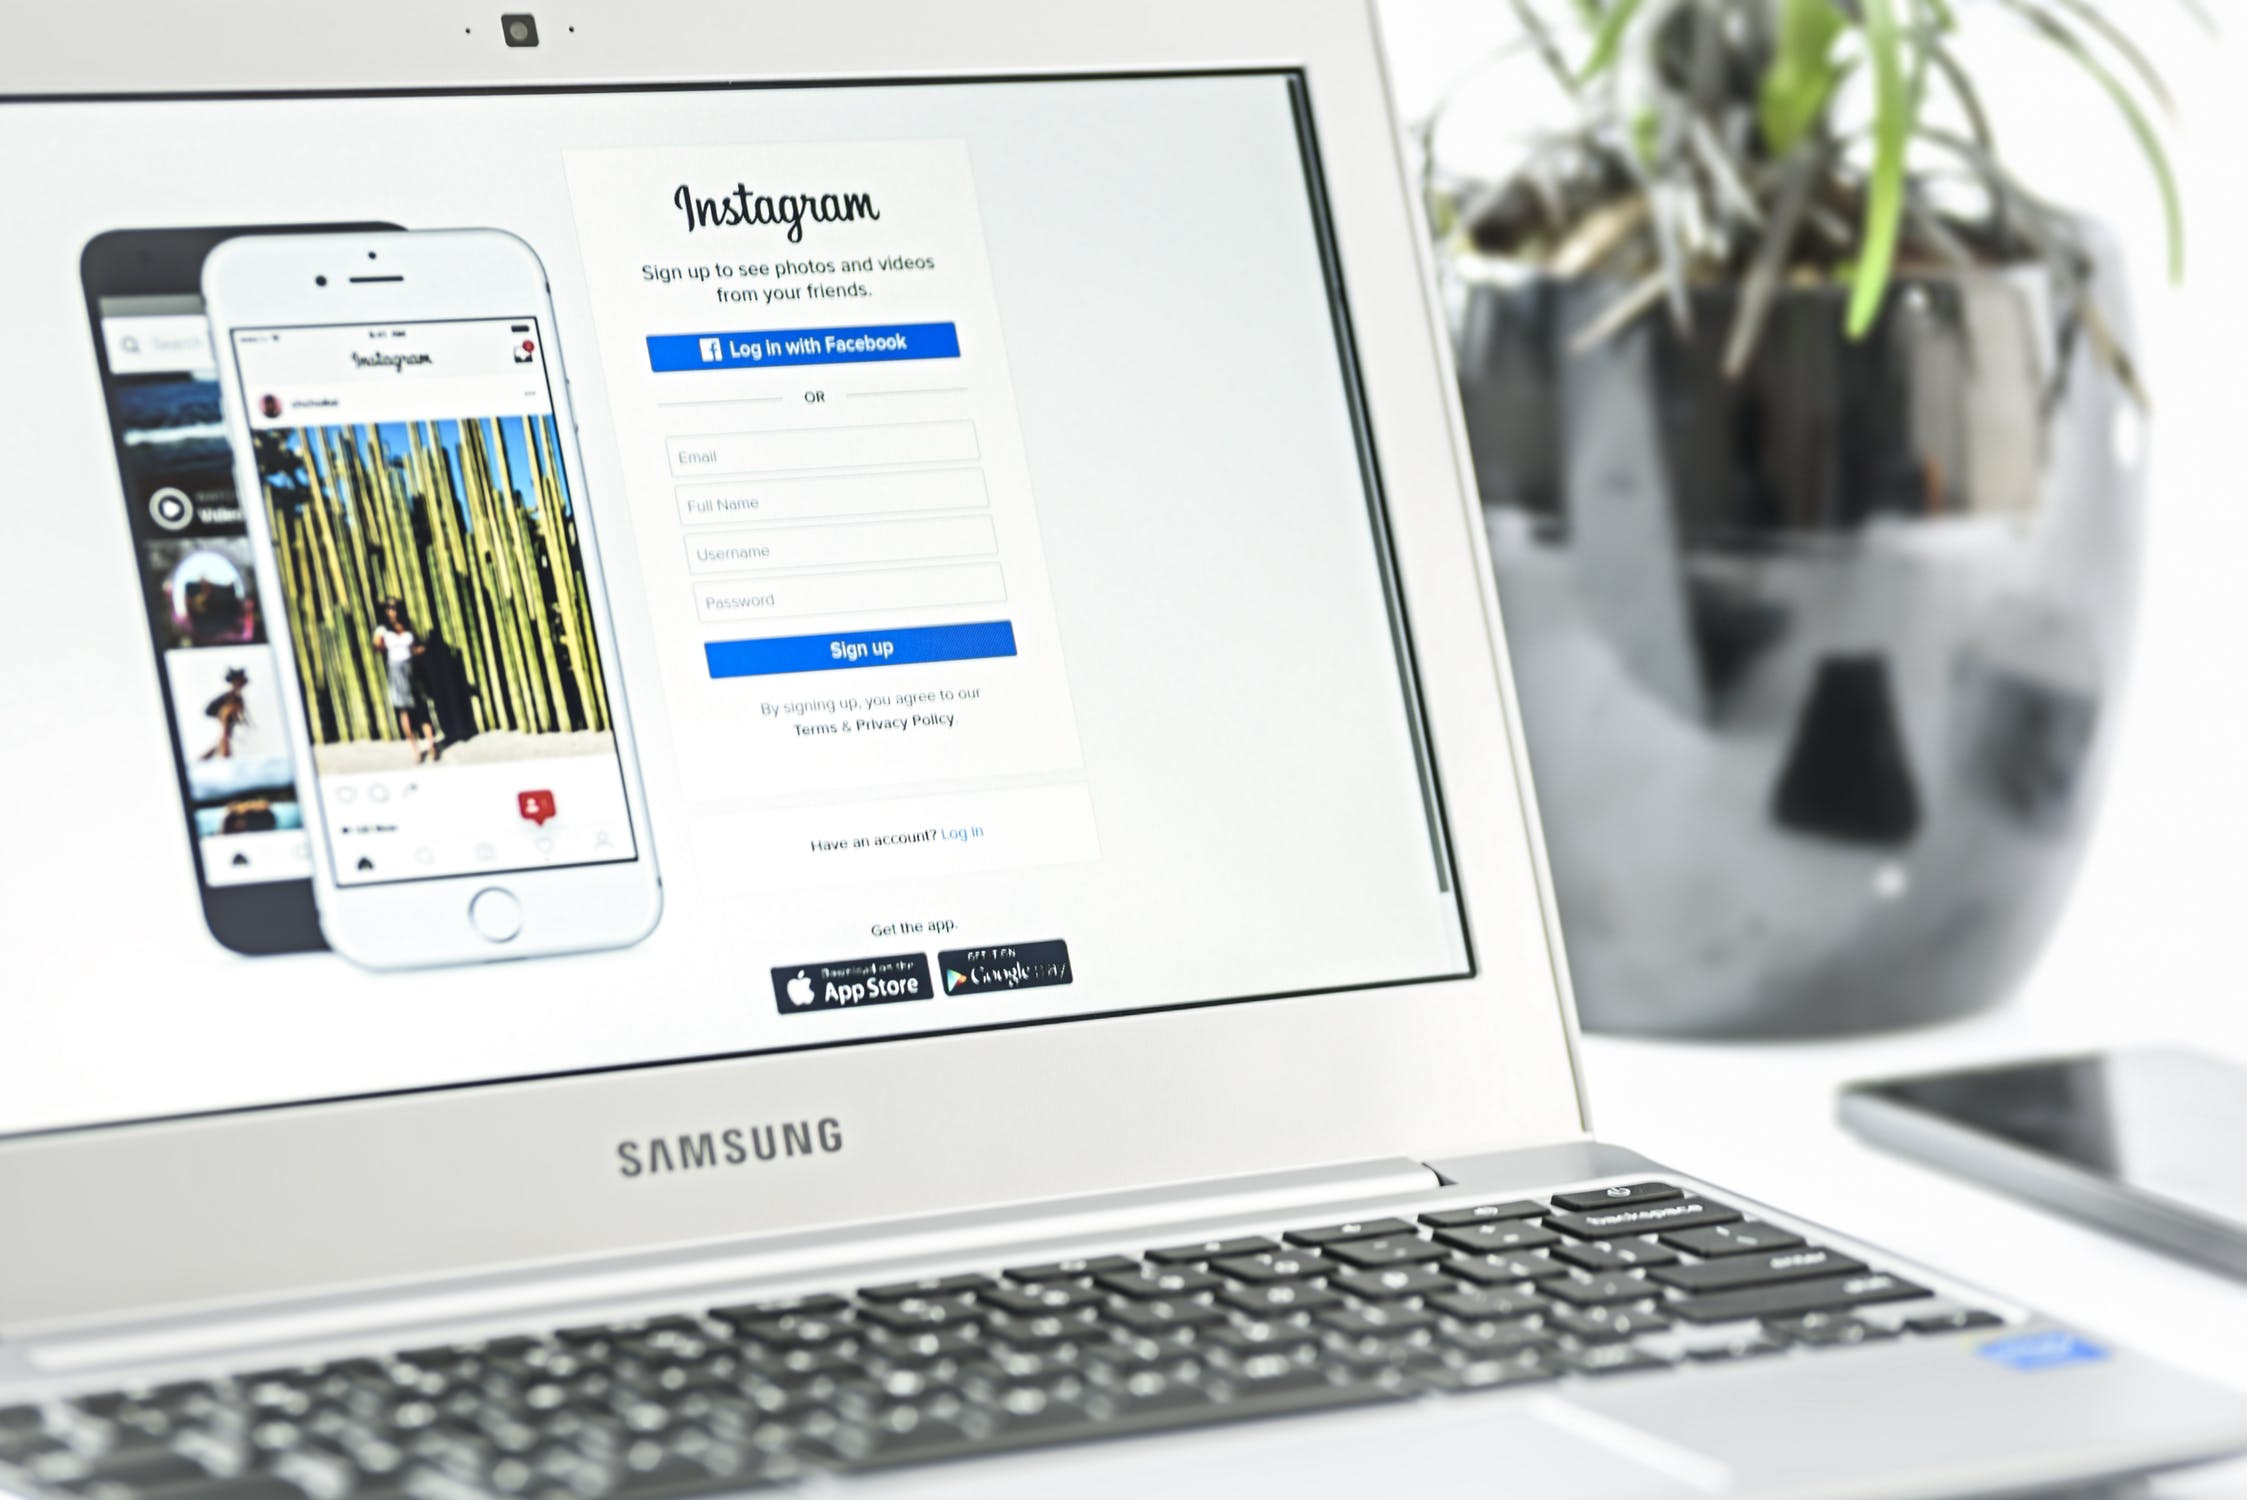 10 Reasons Why Businesses Should Market Their Products and Services Using Instagram